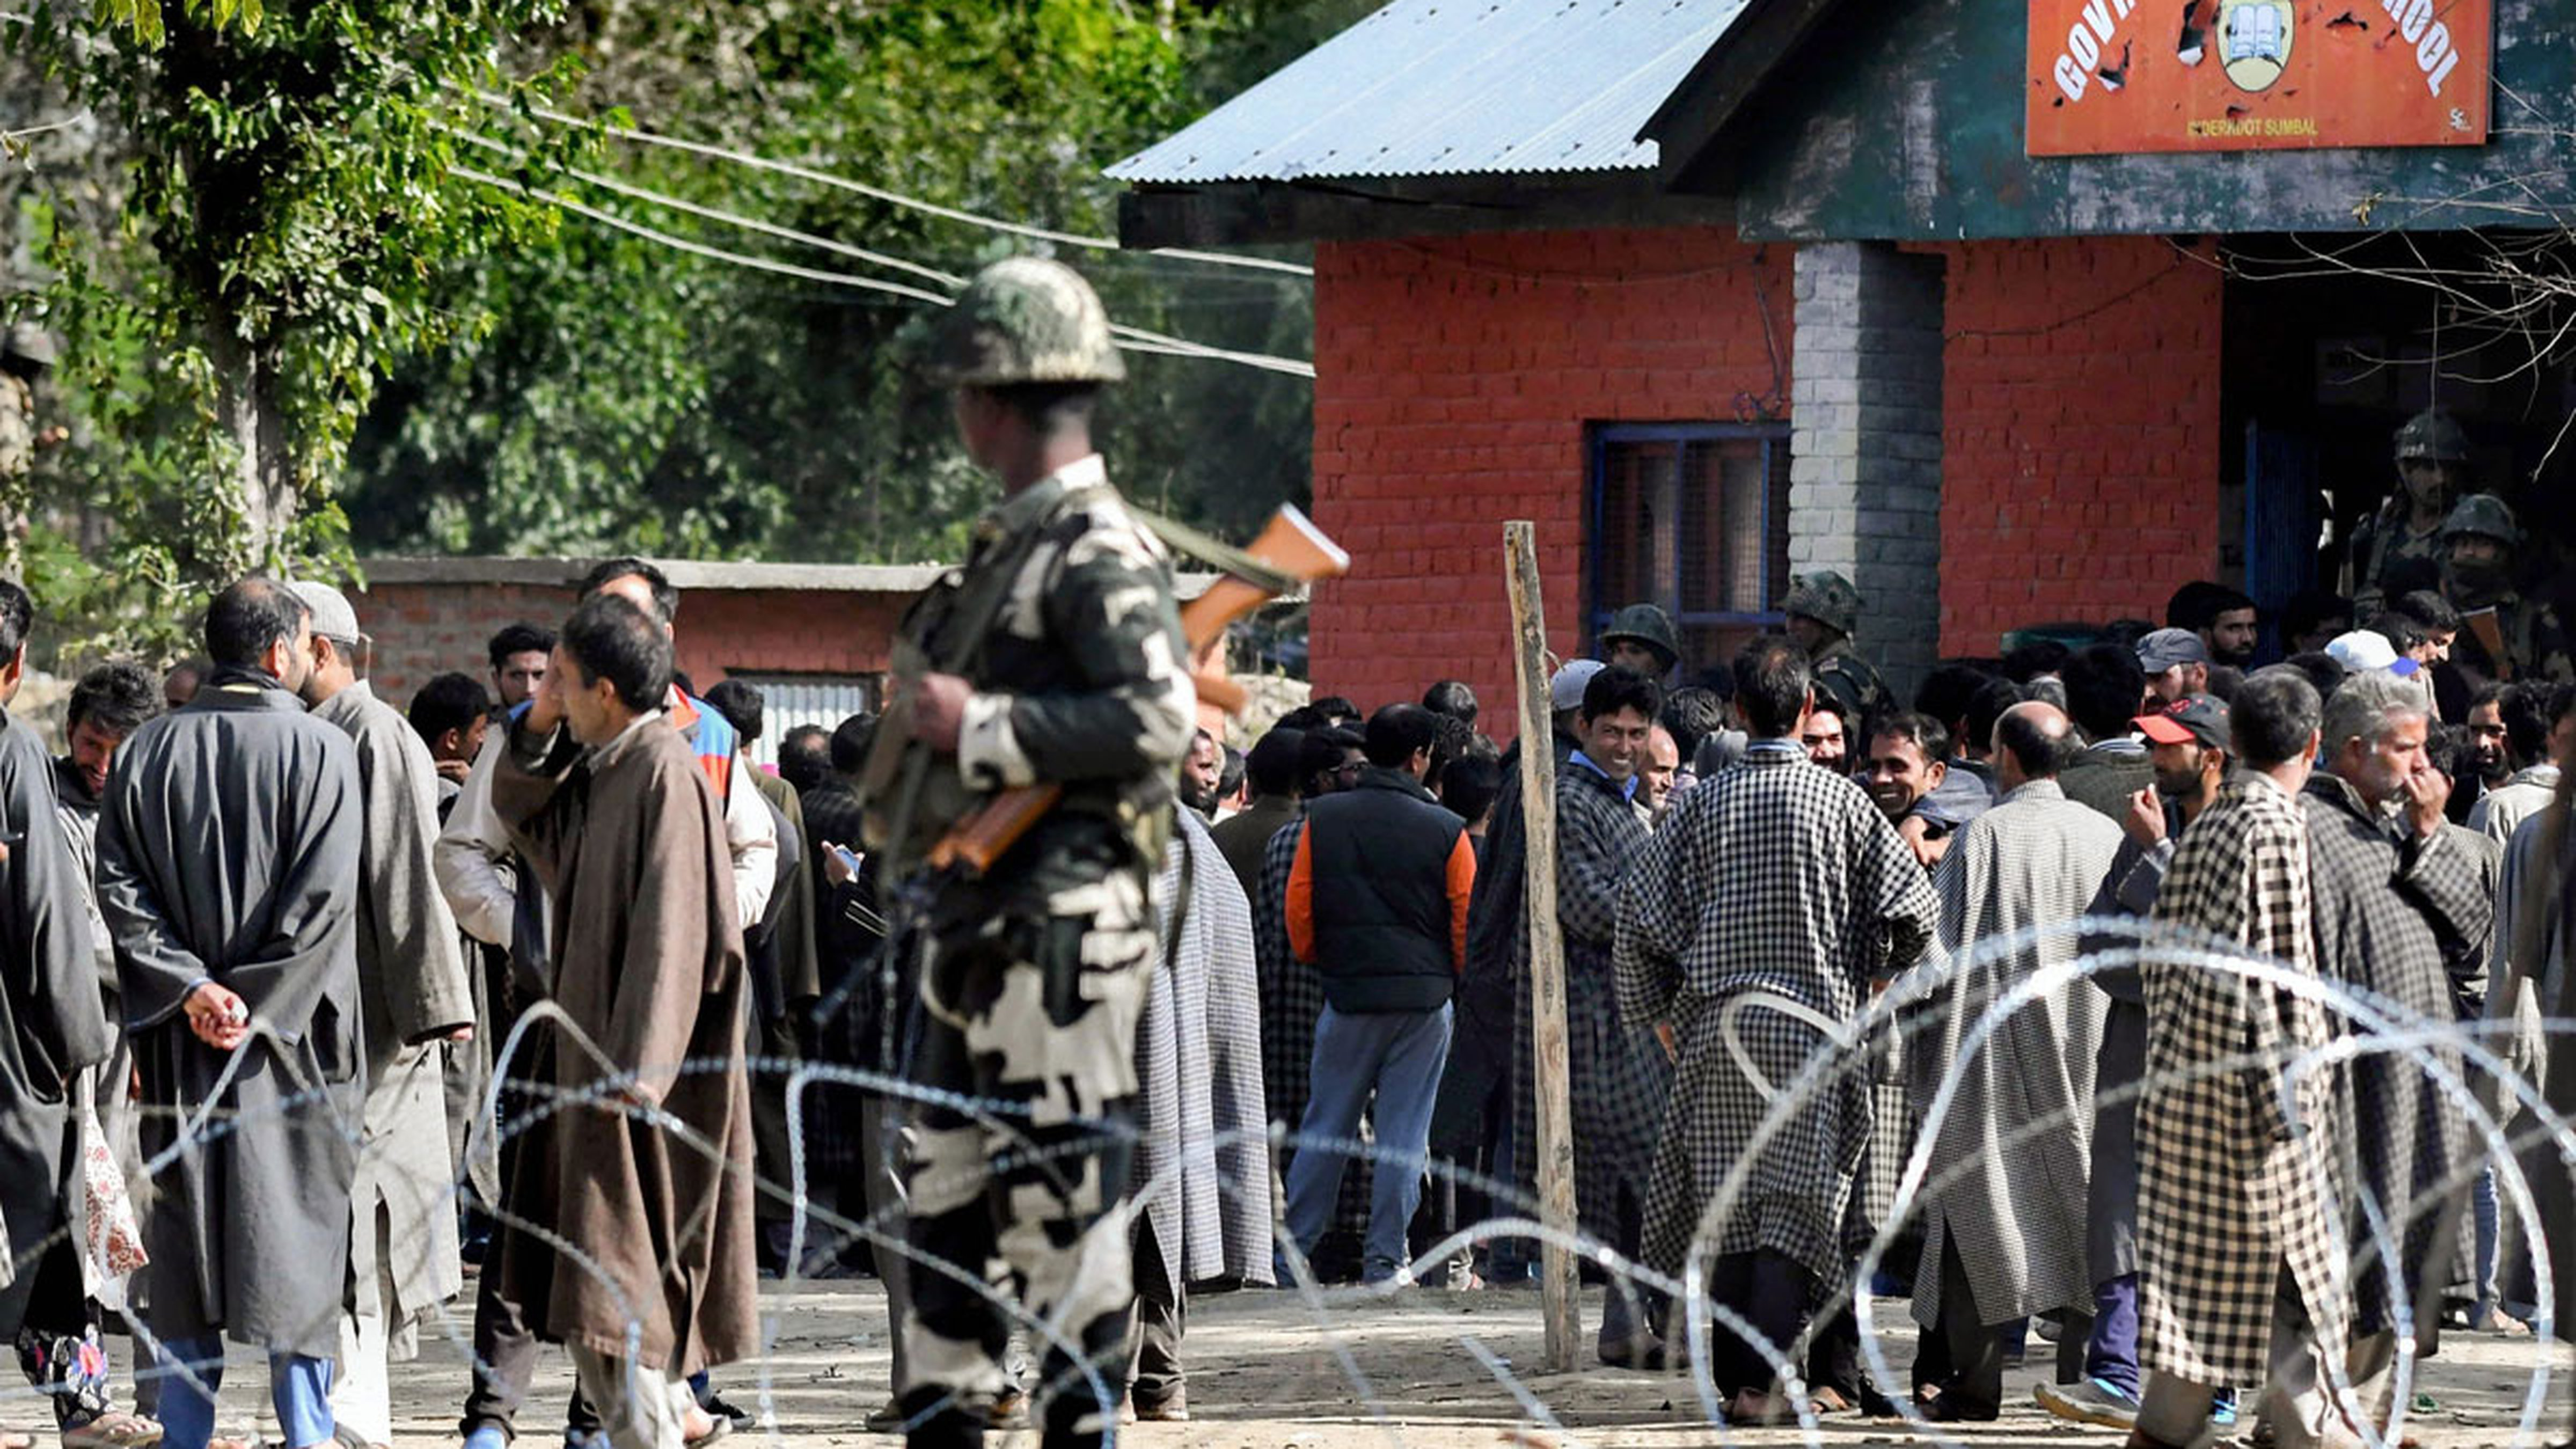 Kashmir's high voter turnout is no indicator that democracy is healthy there